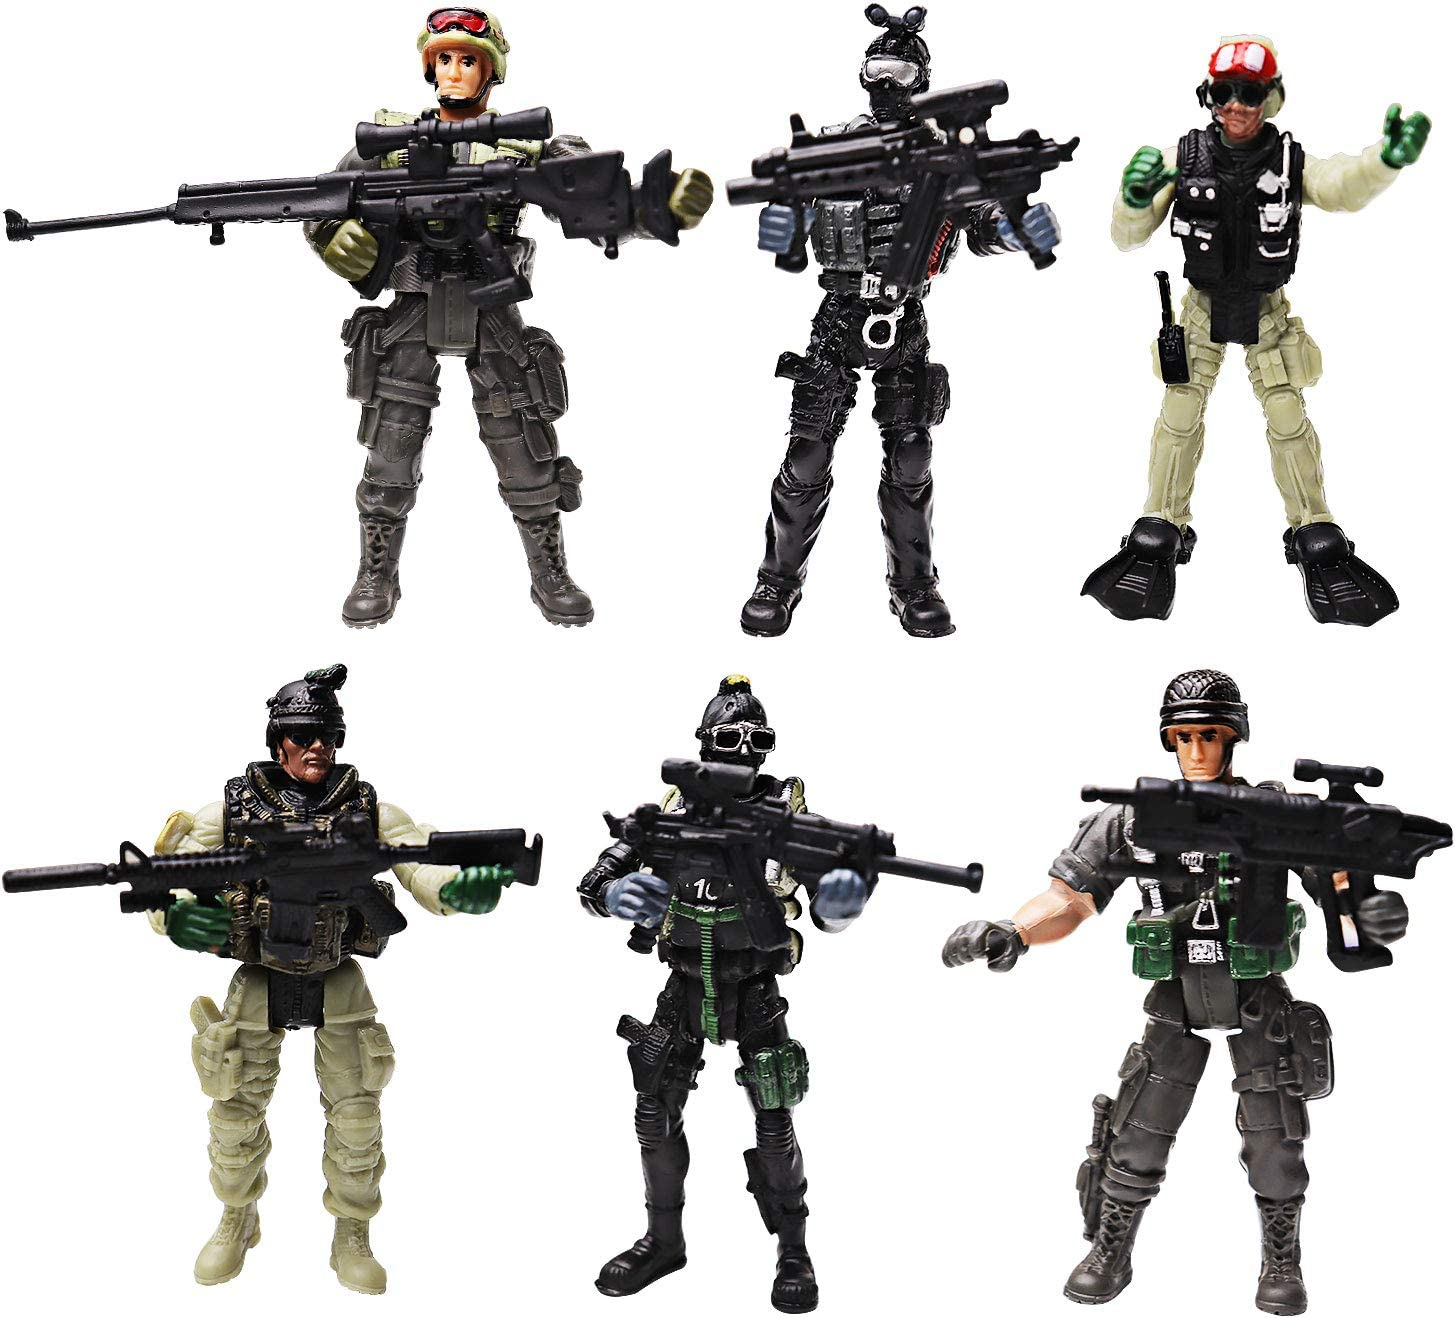 Soldier Action Figure Toy Army Men with Weapon Accessories/ SWAT Team Figure Military Playset for Boys Girls Children Kids 3 4 5 6 7 8 9 Years Old,Great as Christmas,Birthday,Set of 6 (SPECIAL FORCES)